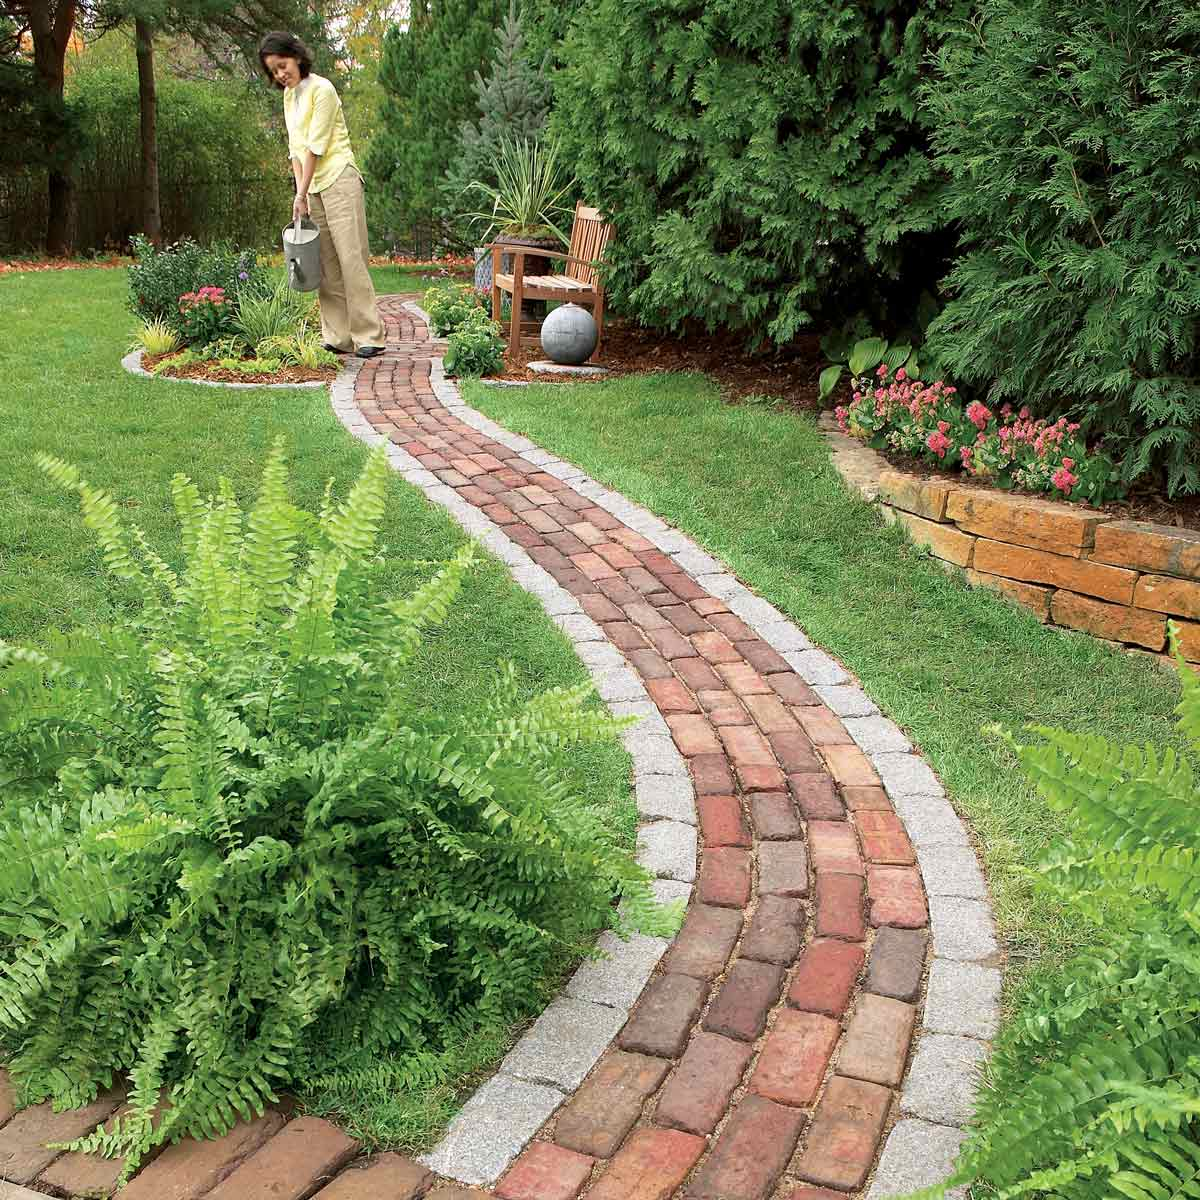 Brick walkway with sand base